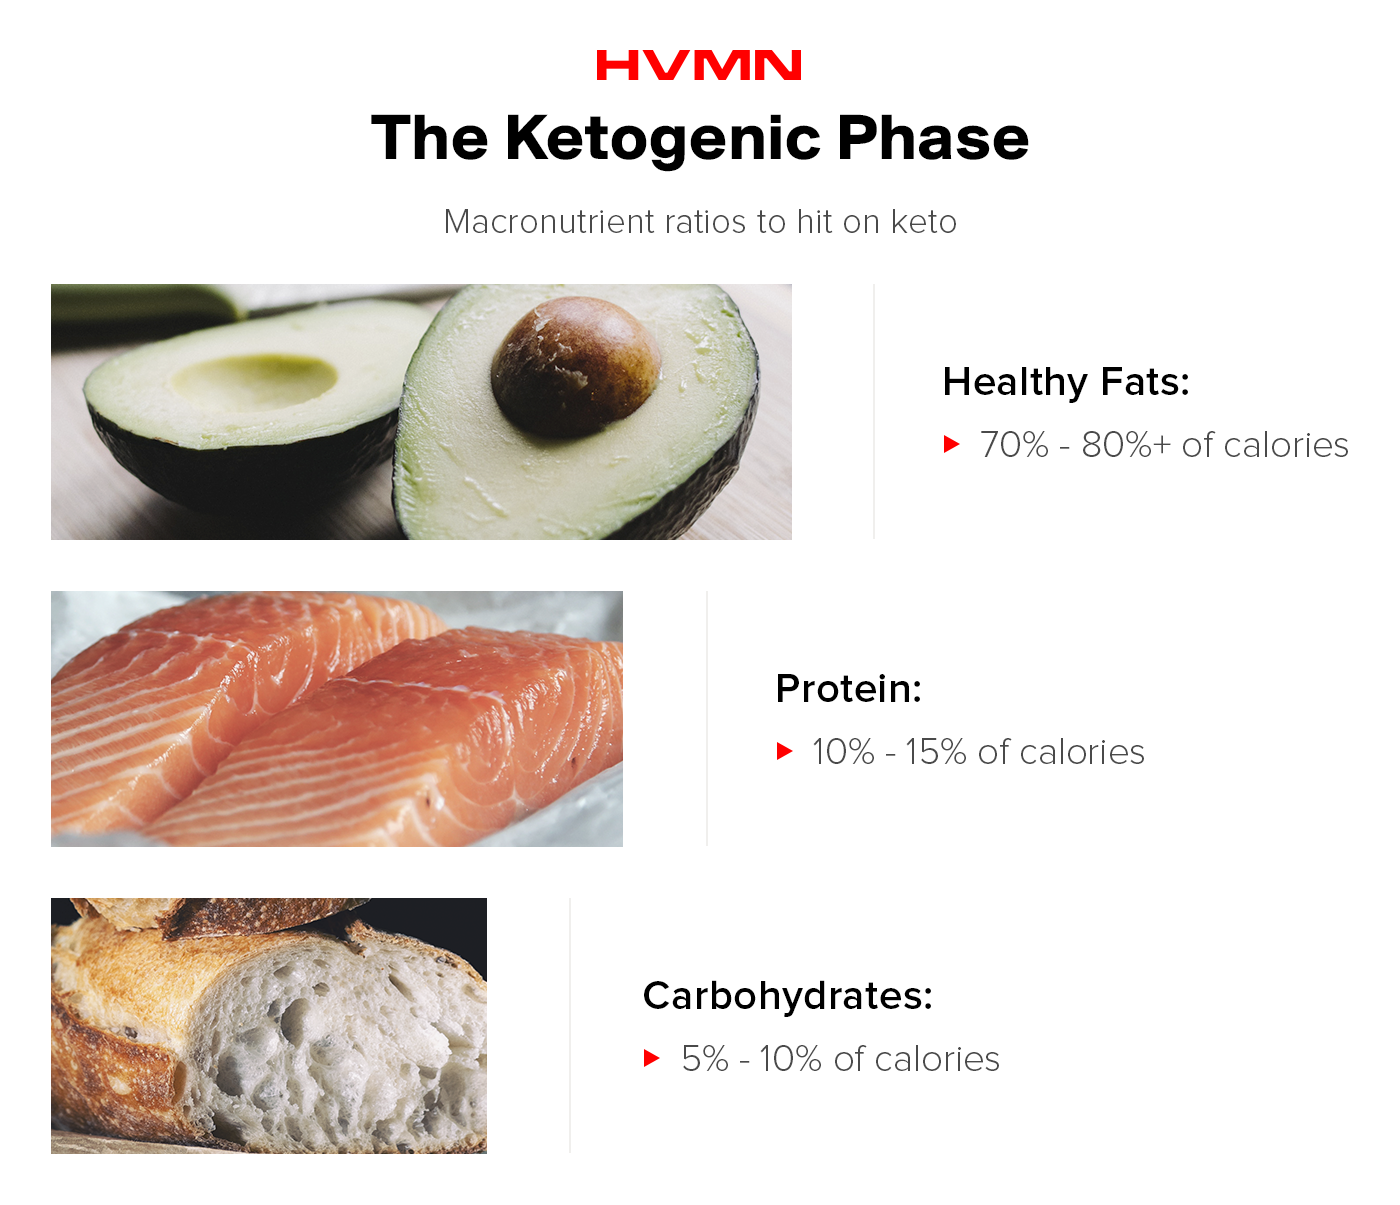 An image of an avocado, salmon and bread, showcasing the different macronutrient breakdowns for the keto phase of cyclical ketogenic dieting